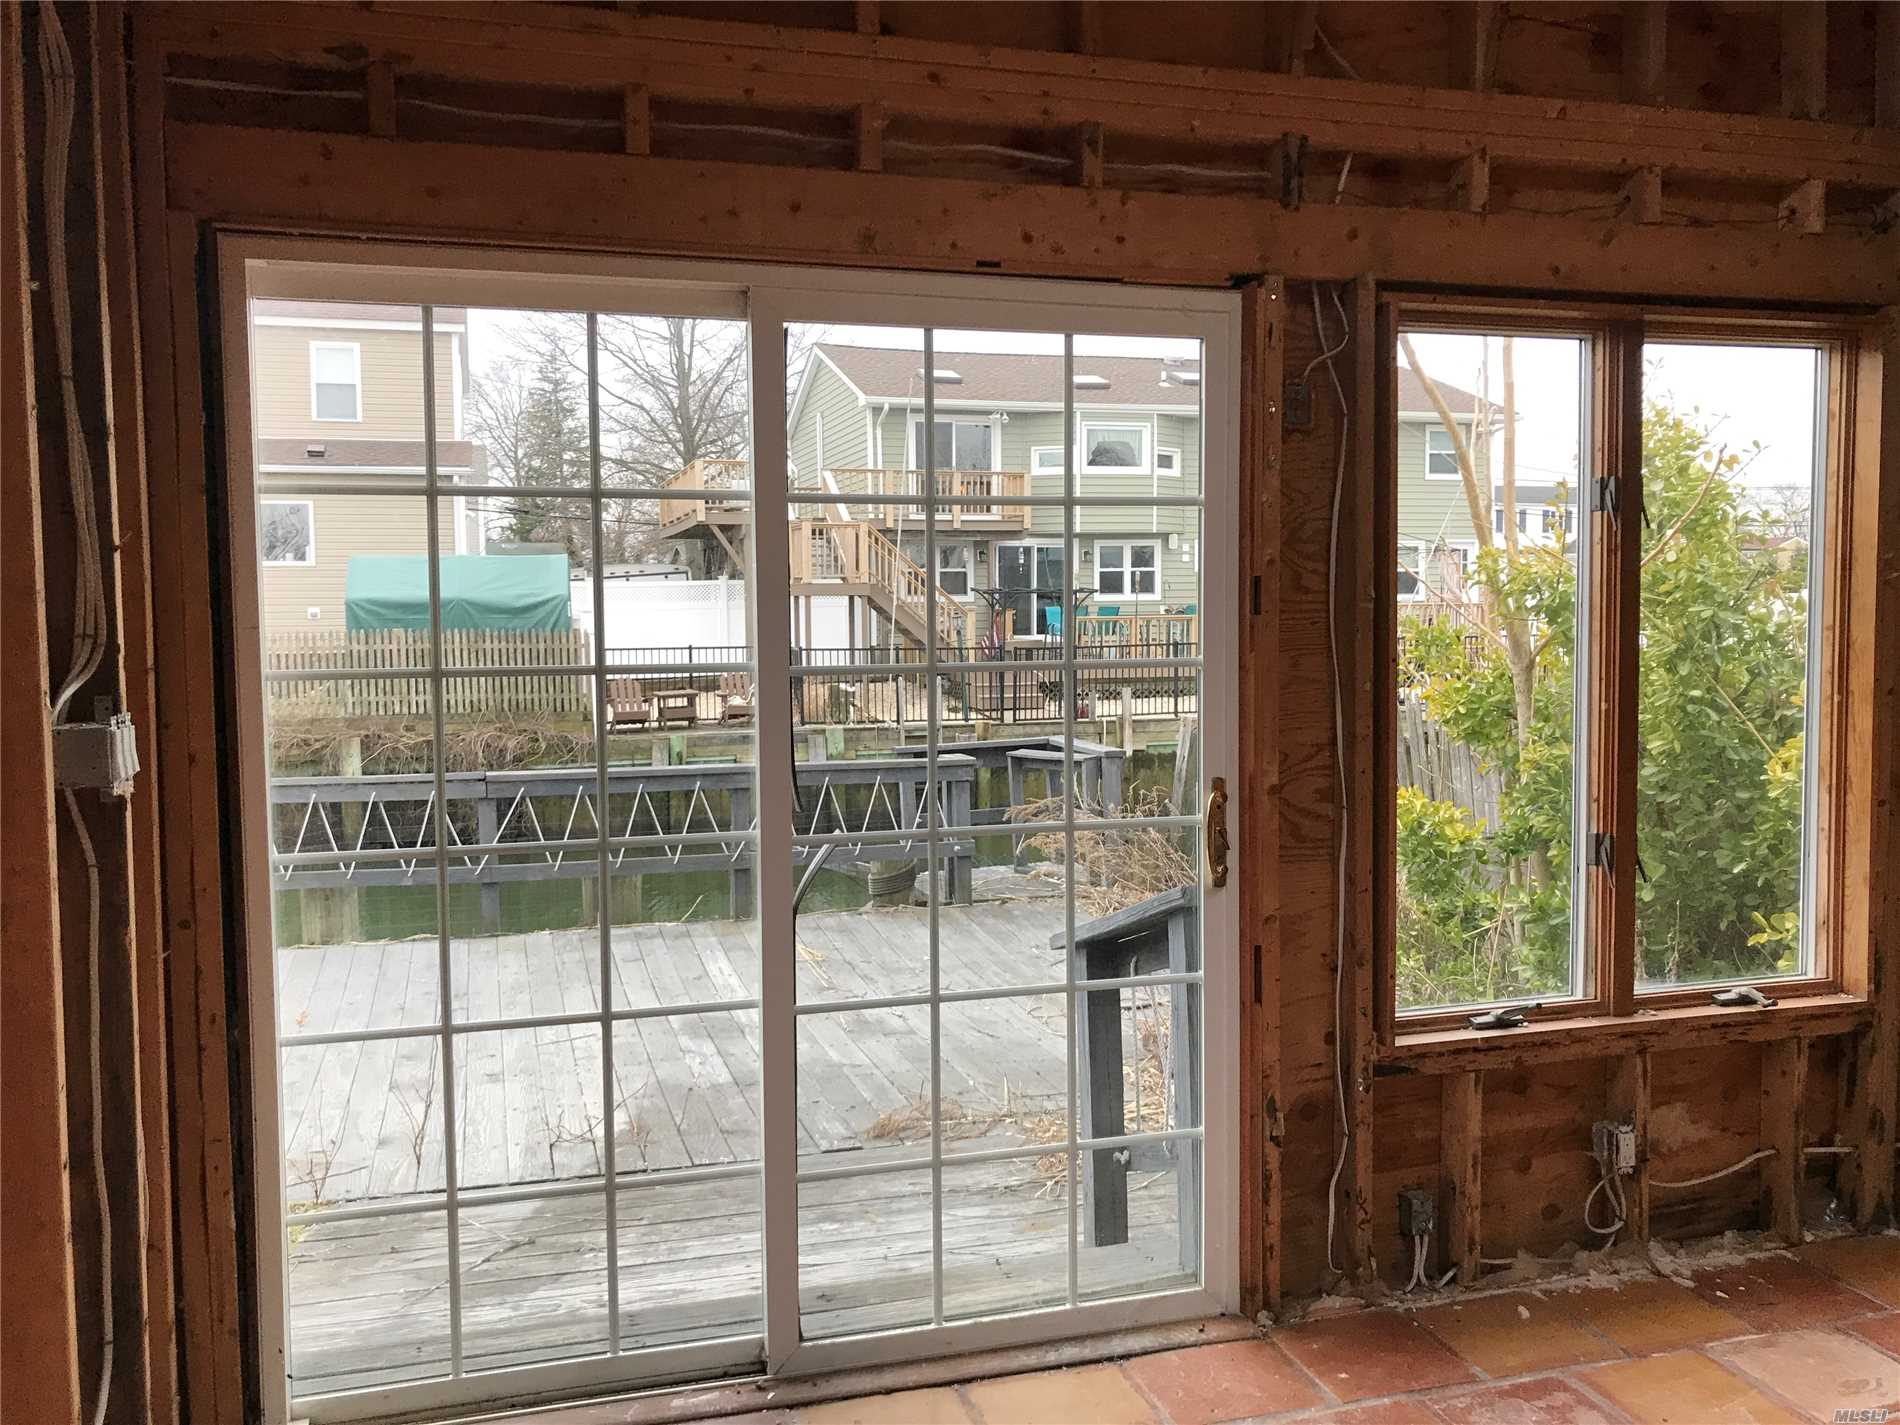 As-Is Water Front House With New Bulkhead. Including A Detached Separate 20X59 Parcel W/Garage & Driveway Across The Lane. This Home Is Completely Gutted On The First Floor Due To Water Damage From Sandy Cash Only. House Needs To Be Elevated, & Taxes May Change, Please Verify. So Many Possibilities. Investor's Delight On The Water. Take Your Boat Right Out To The Open Bay.